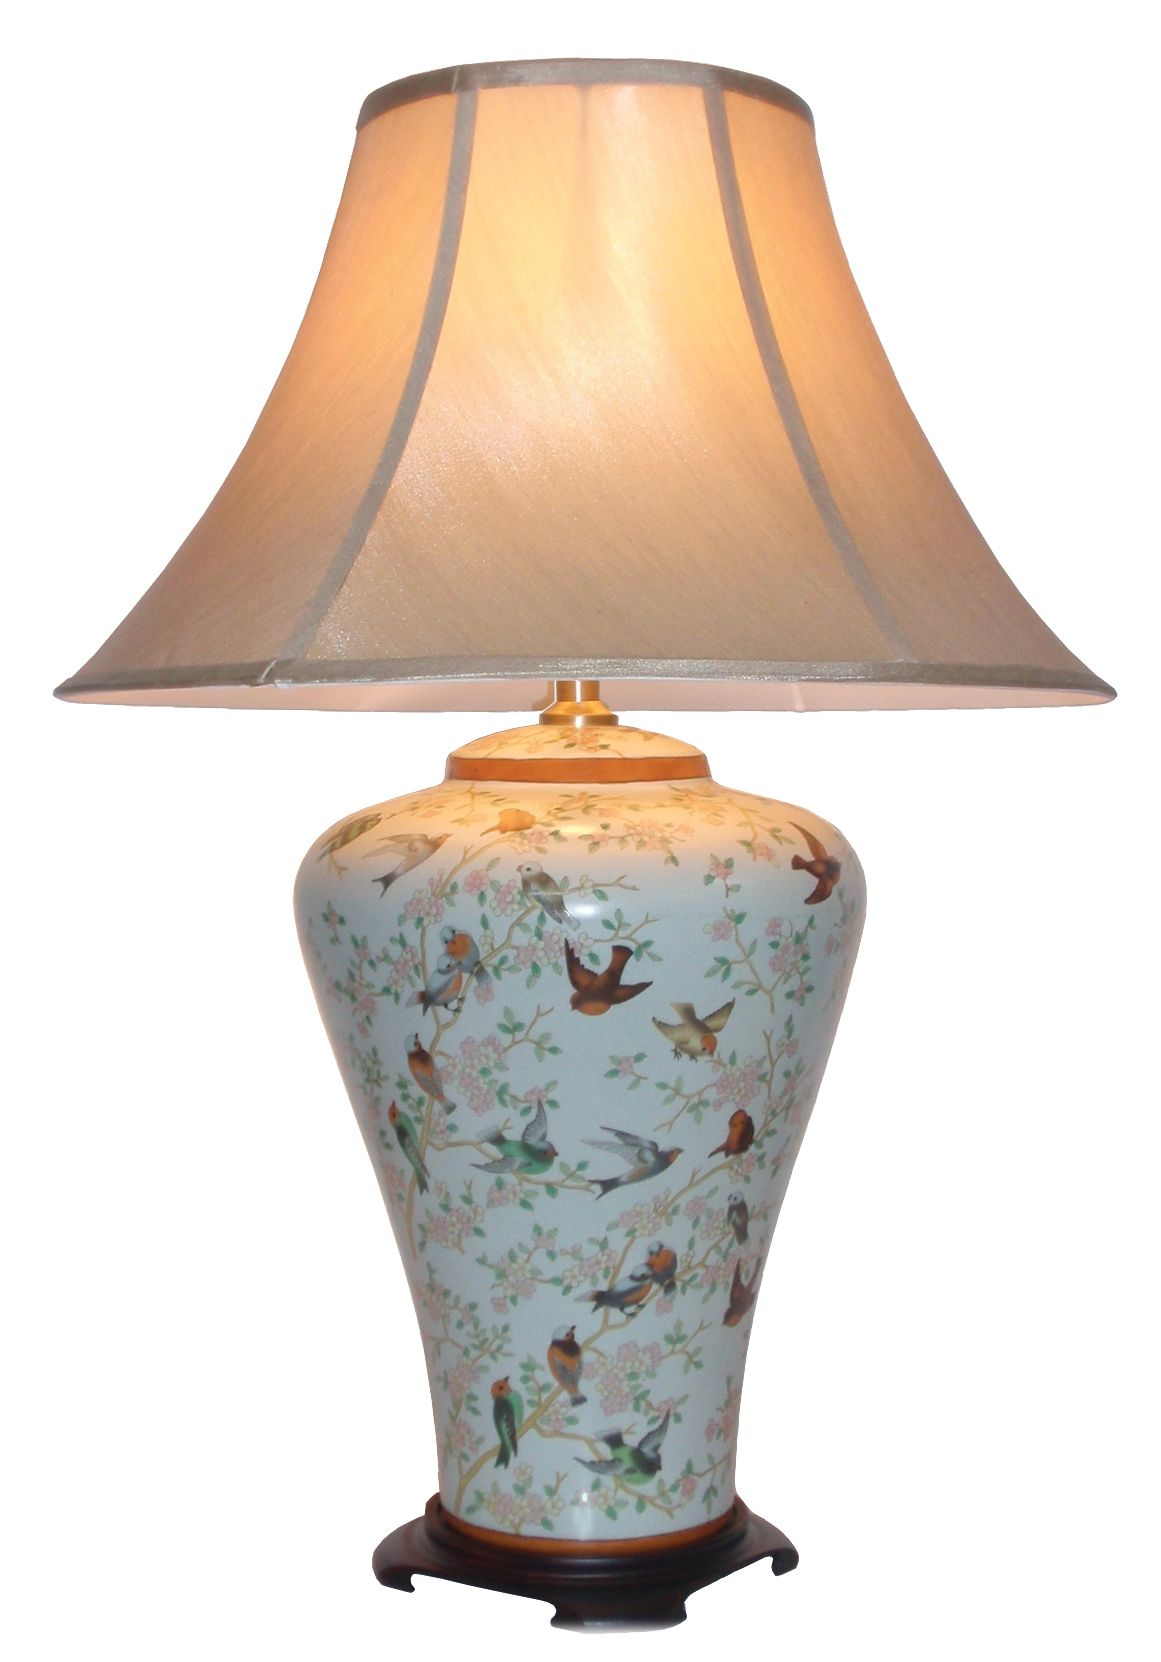 Alashankou chinese porcelain table lamp in a very pale blue alashankou chinese porcelain table lamp in a very pale blue background from amiska mozeypictures Image collections